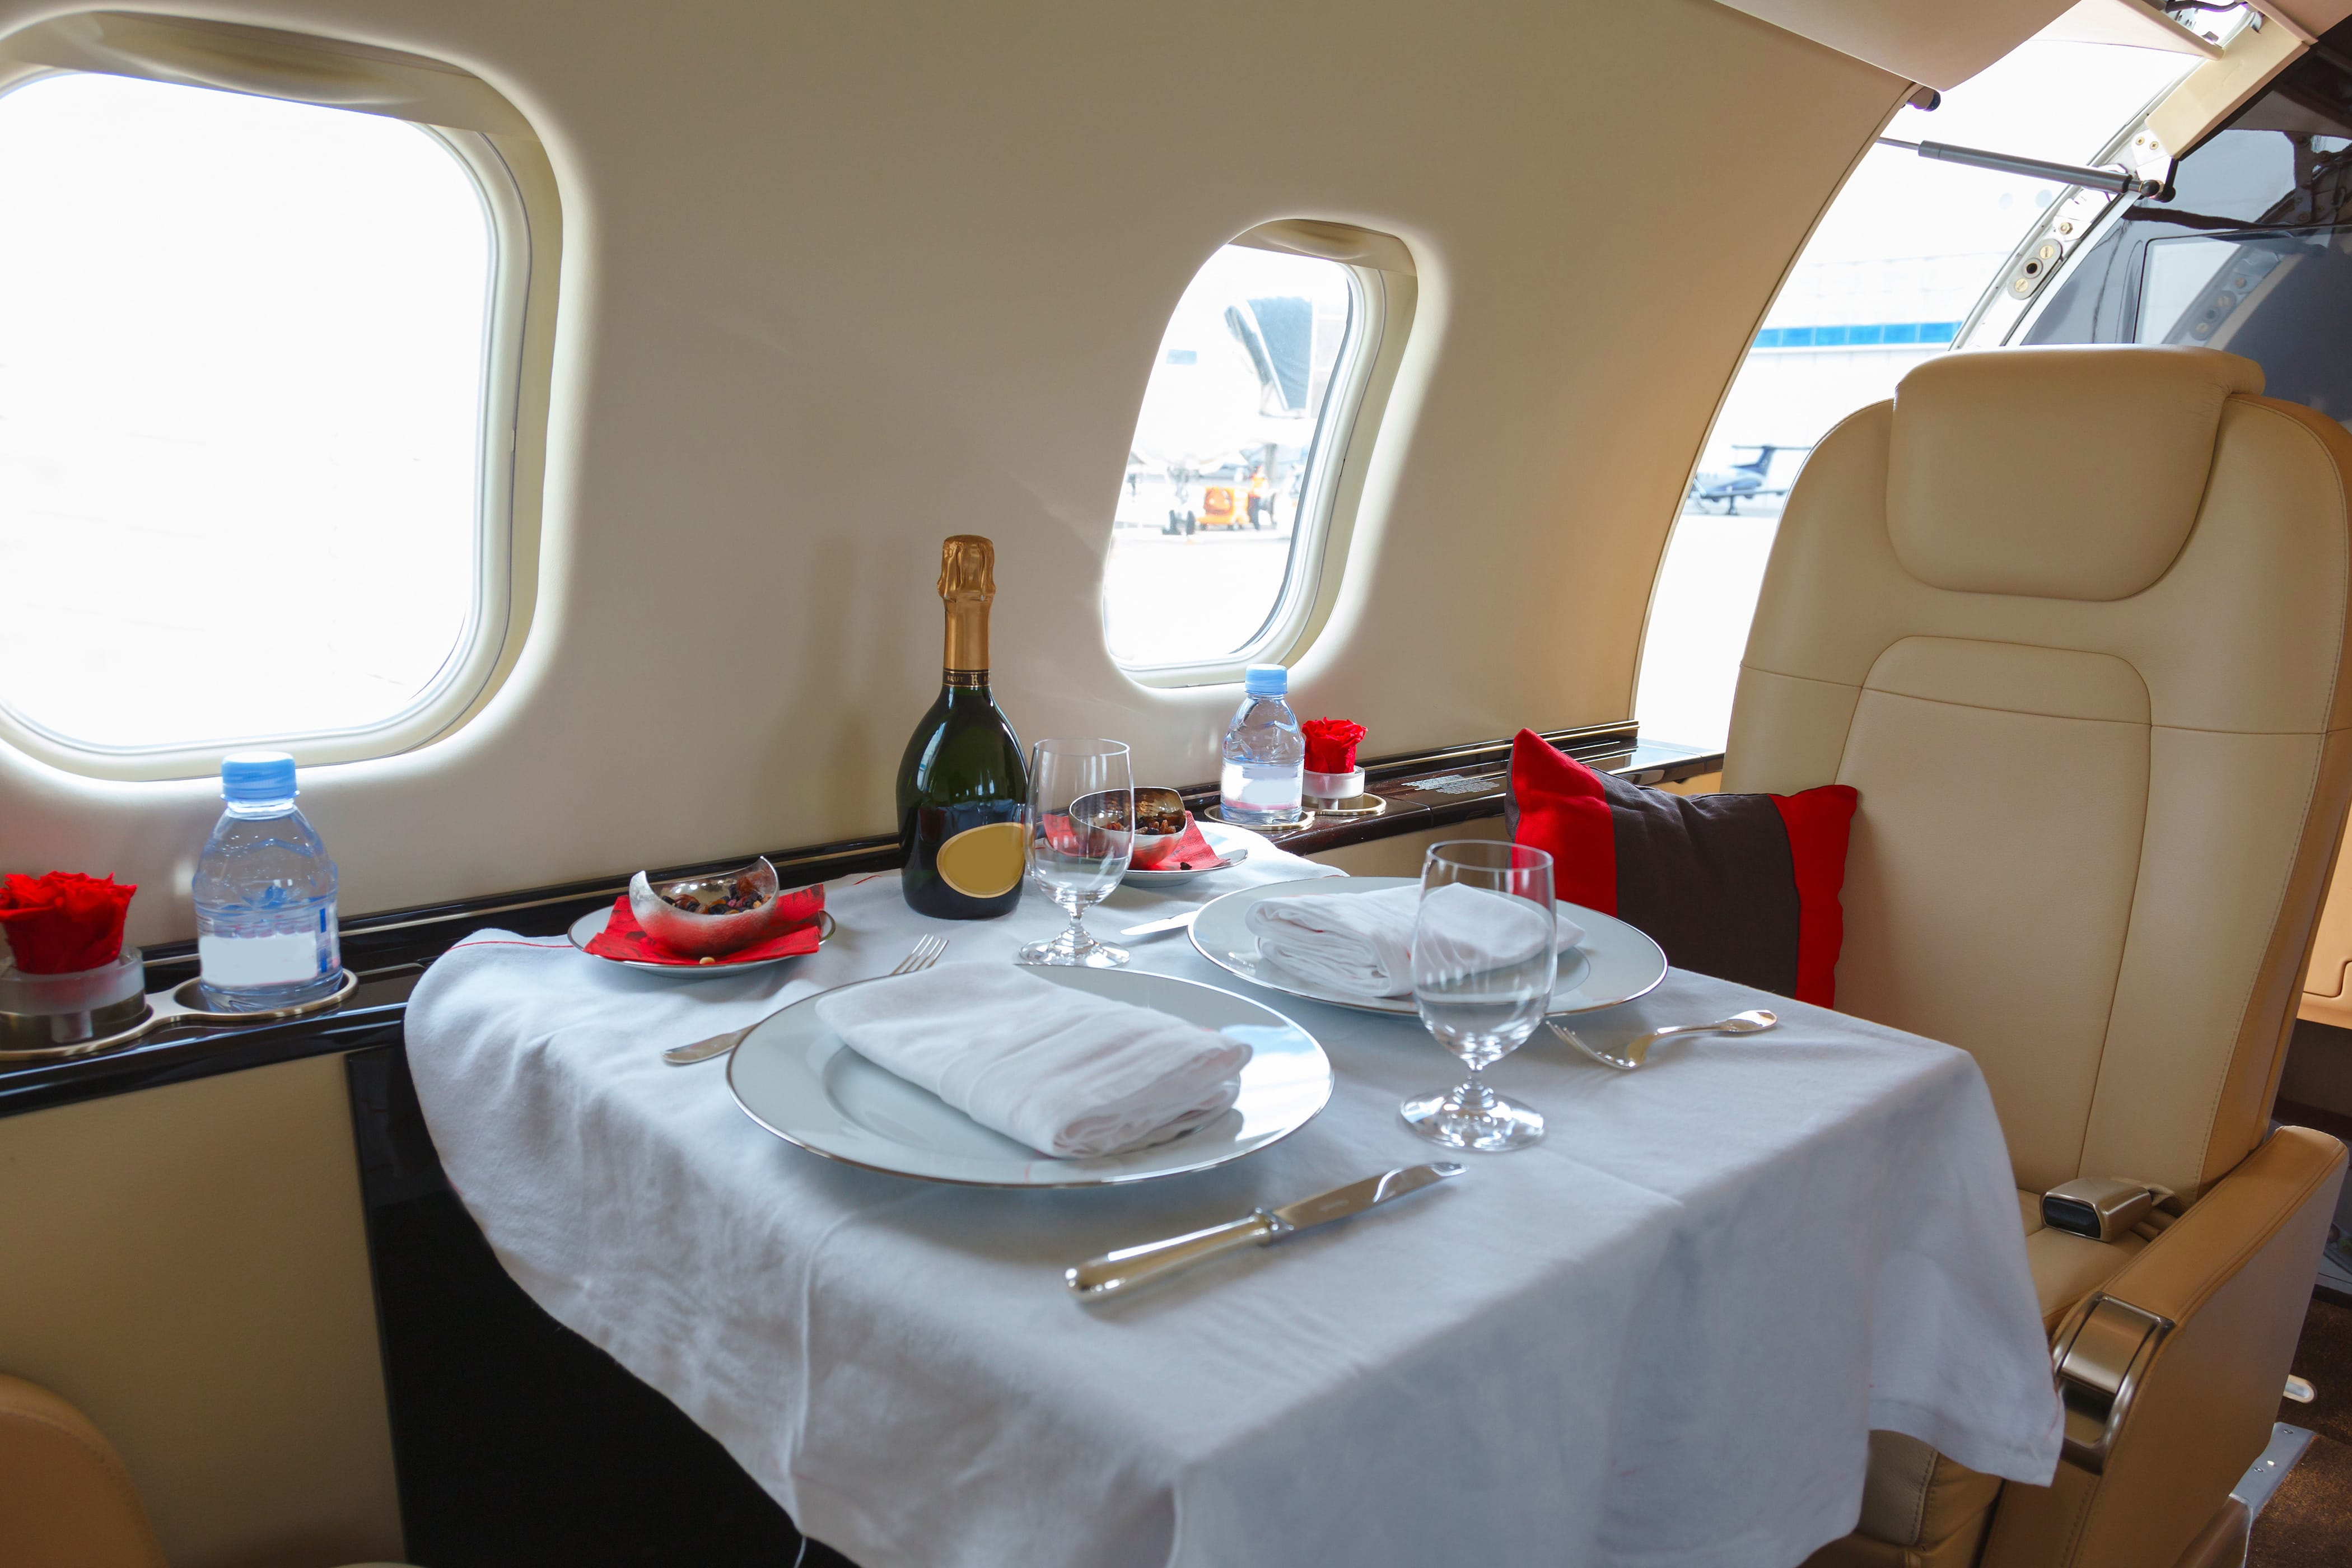 w20-1-First Class Dining Airplane